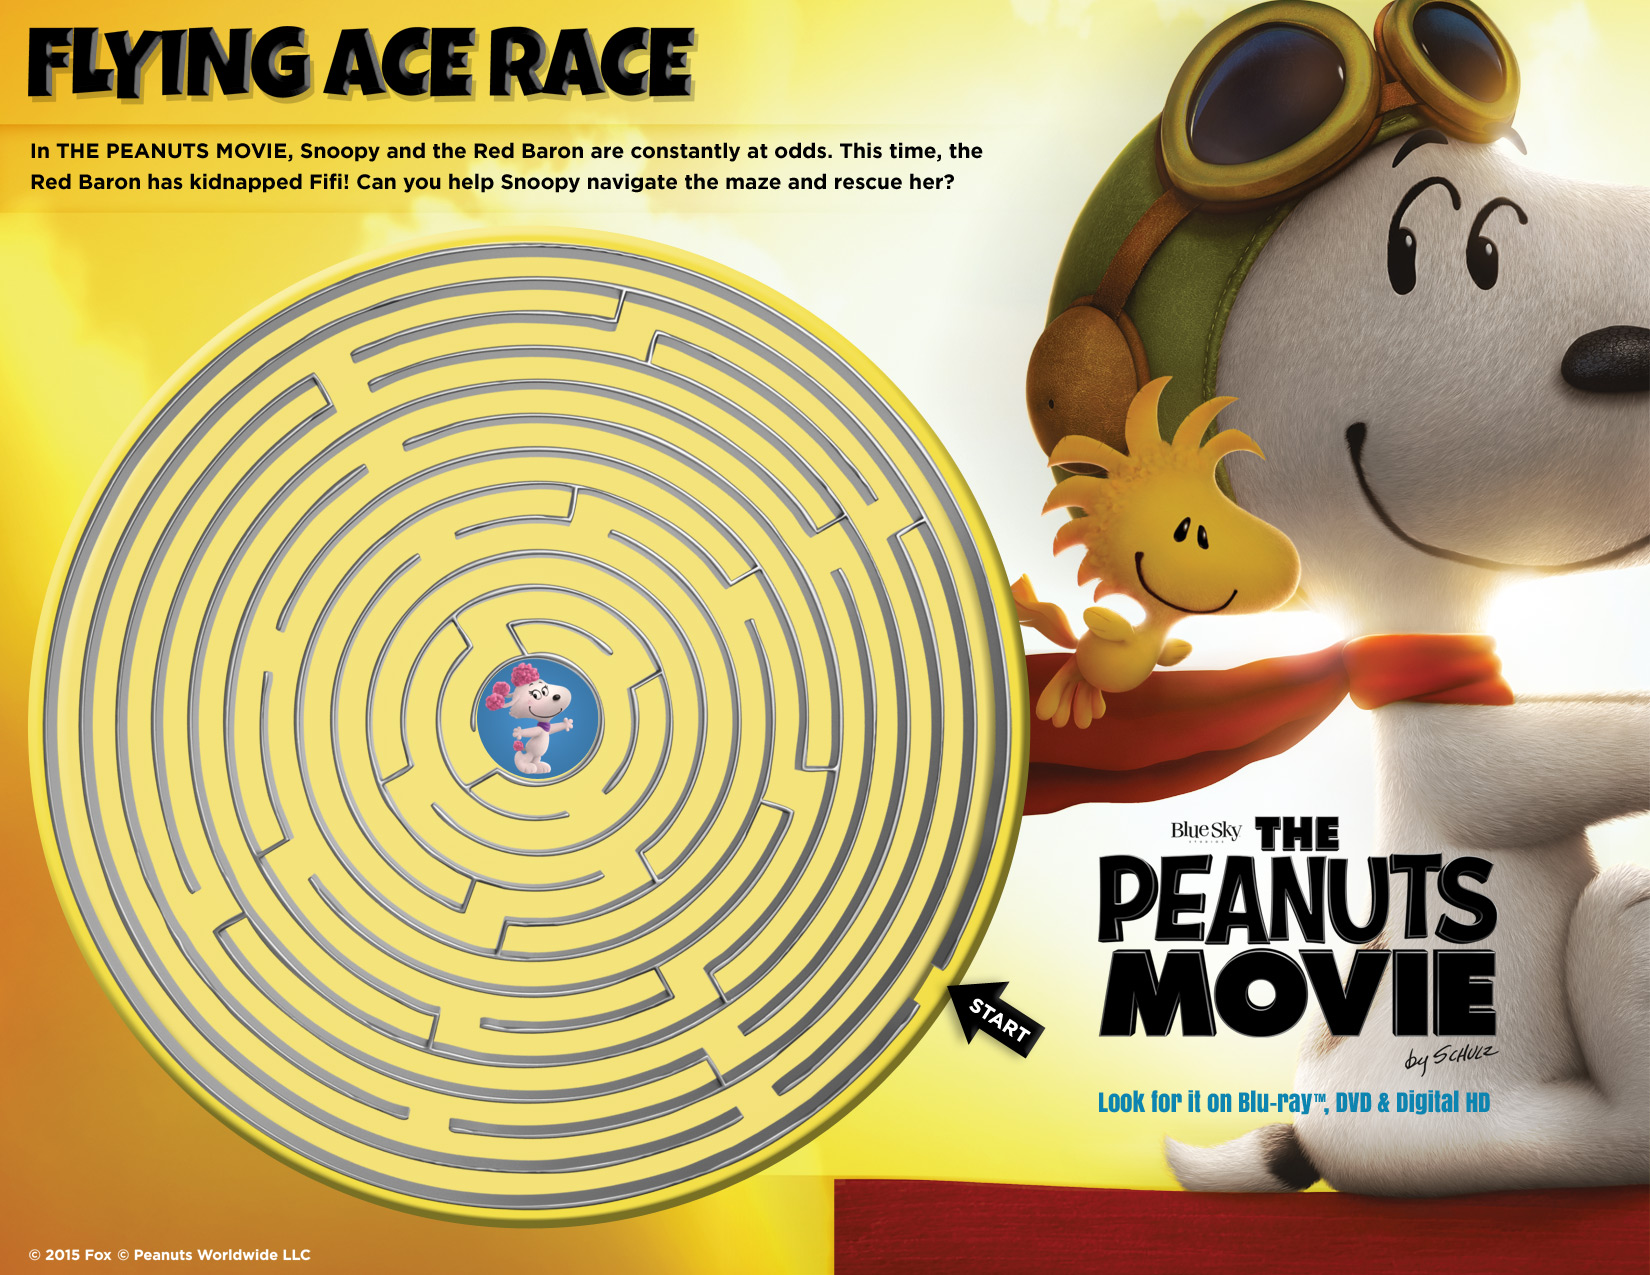 peanuts_toolkit_activities_flyingacerace